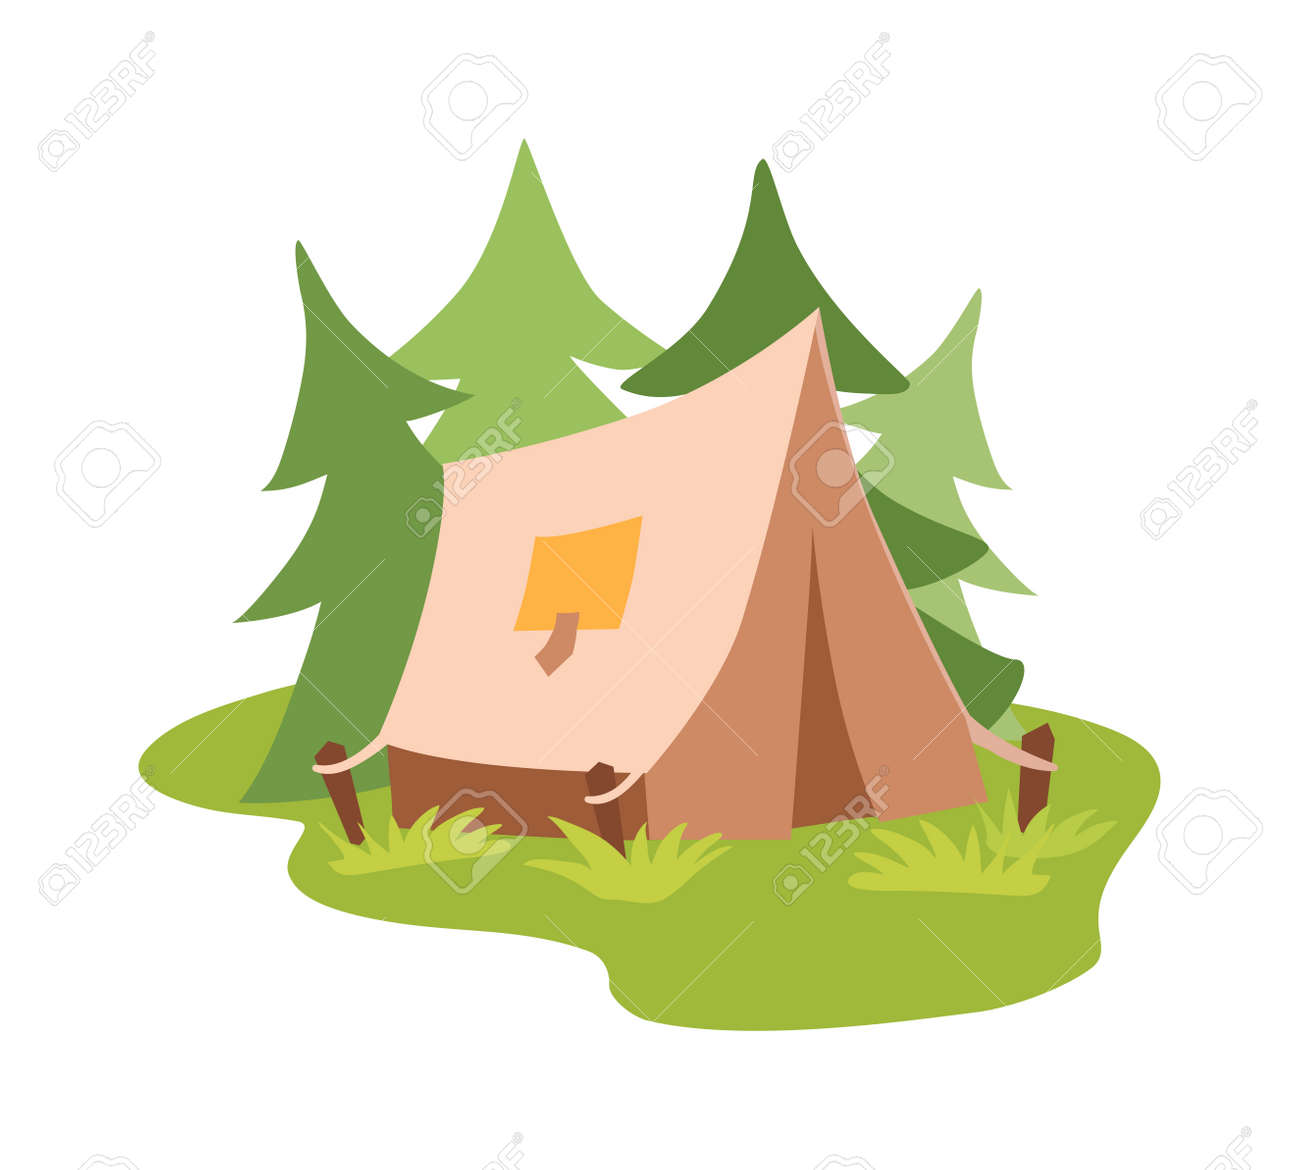 Forest c&ing vector concept with tourist outdoor tent. Outdoor tent summer nature leisure and activity  sc 1 st  123RF Stock Photos & Forest Camping Vector Concept With Tourist Outdoor Tent. Outdoor ...